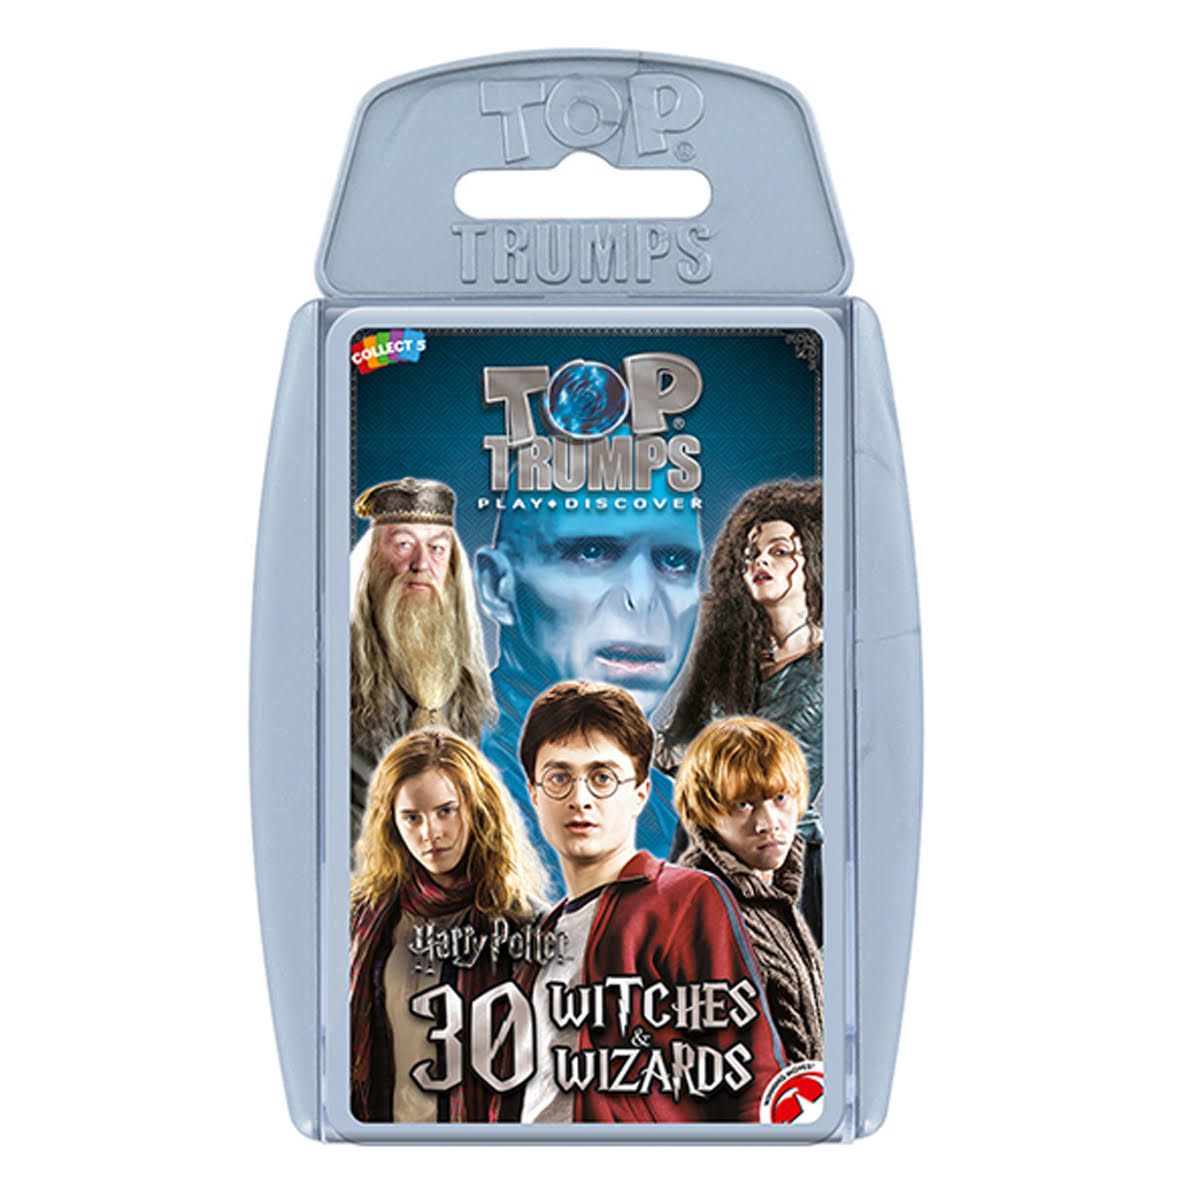 Harry Potter Top 30 Witches and Wizards Top Trumps Specials Card Game